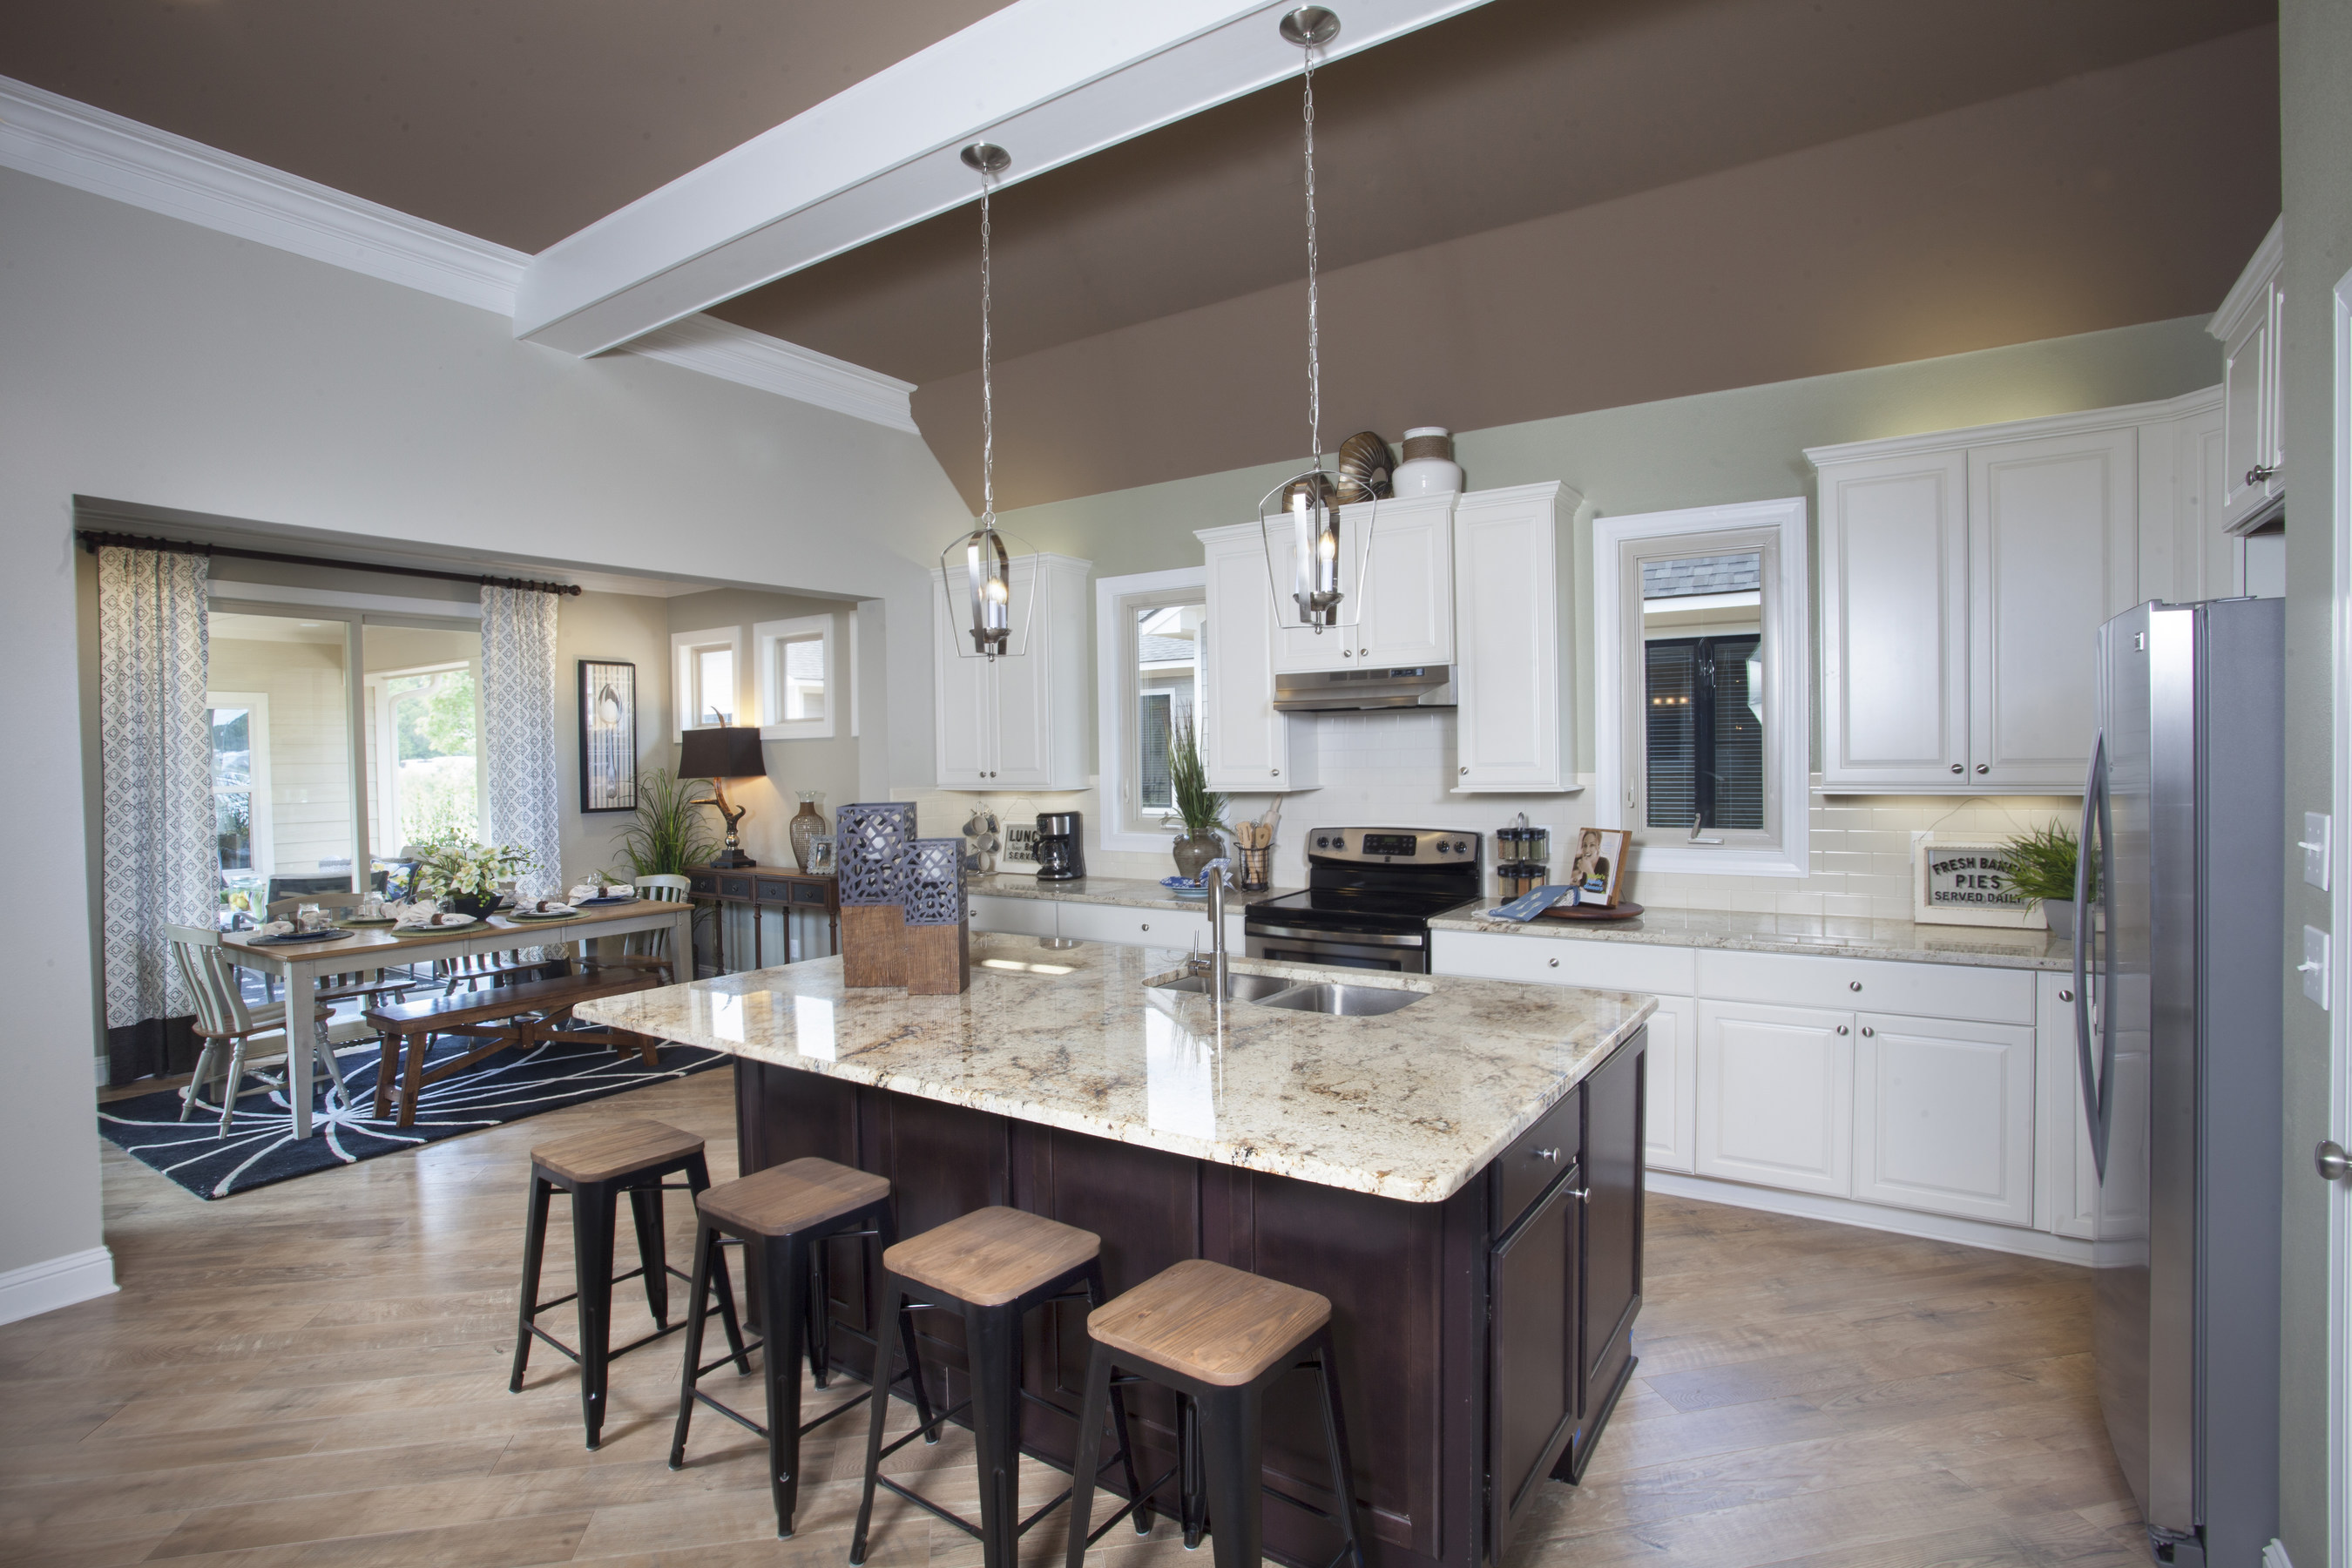 Schumacher Homes Wins Gold National Award At The 2015 International Builders Show For Best